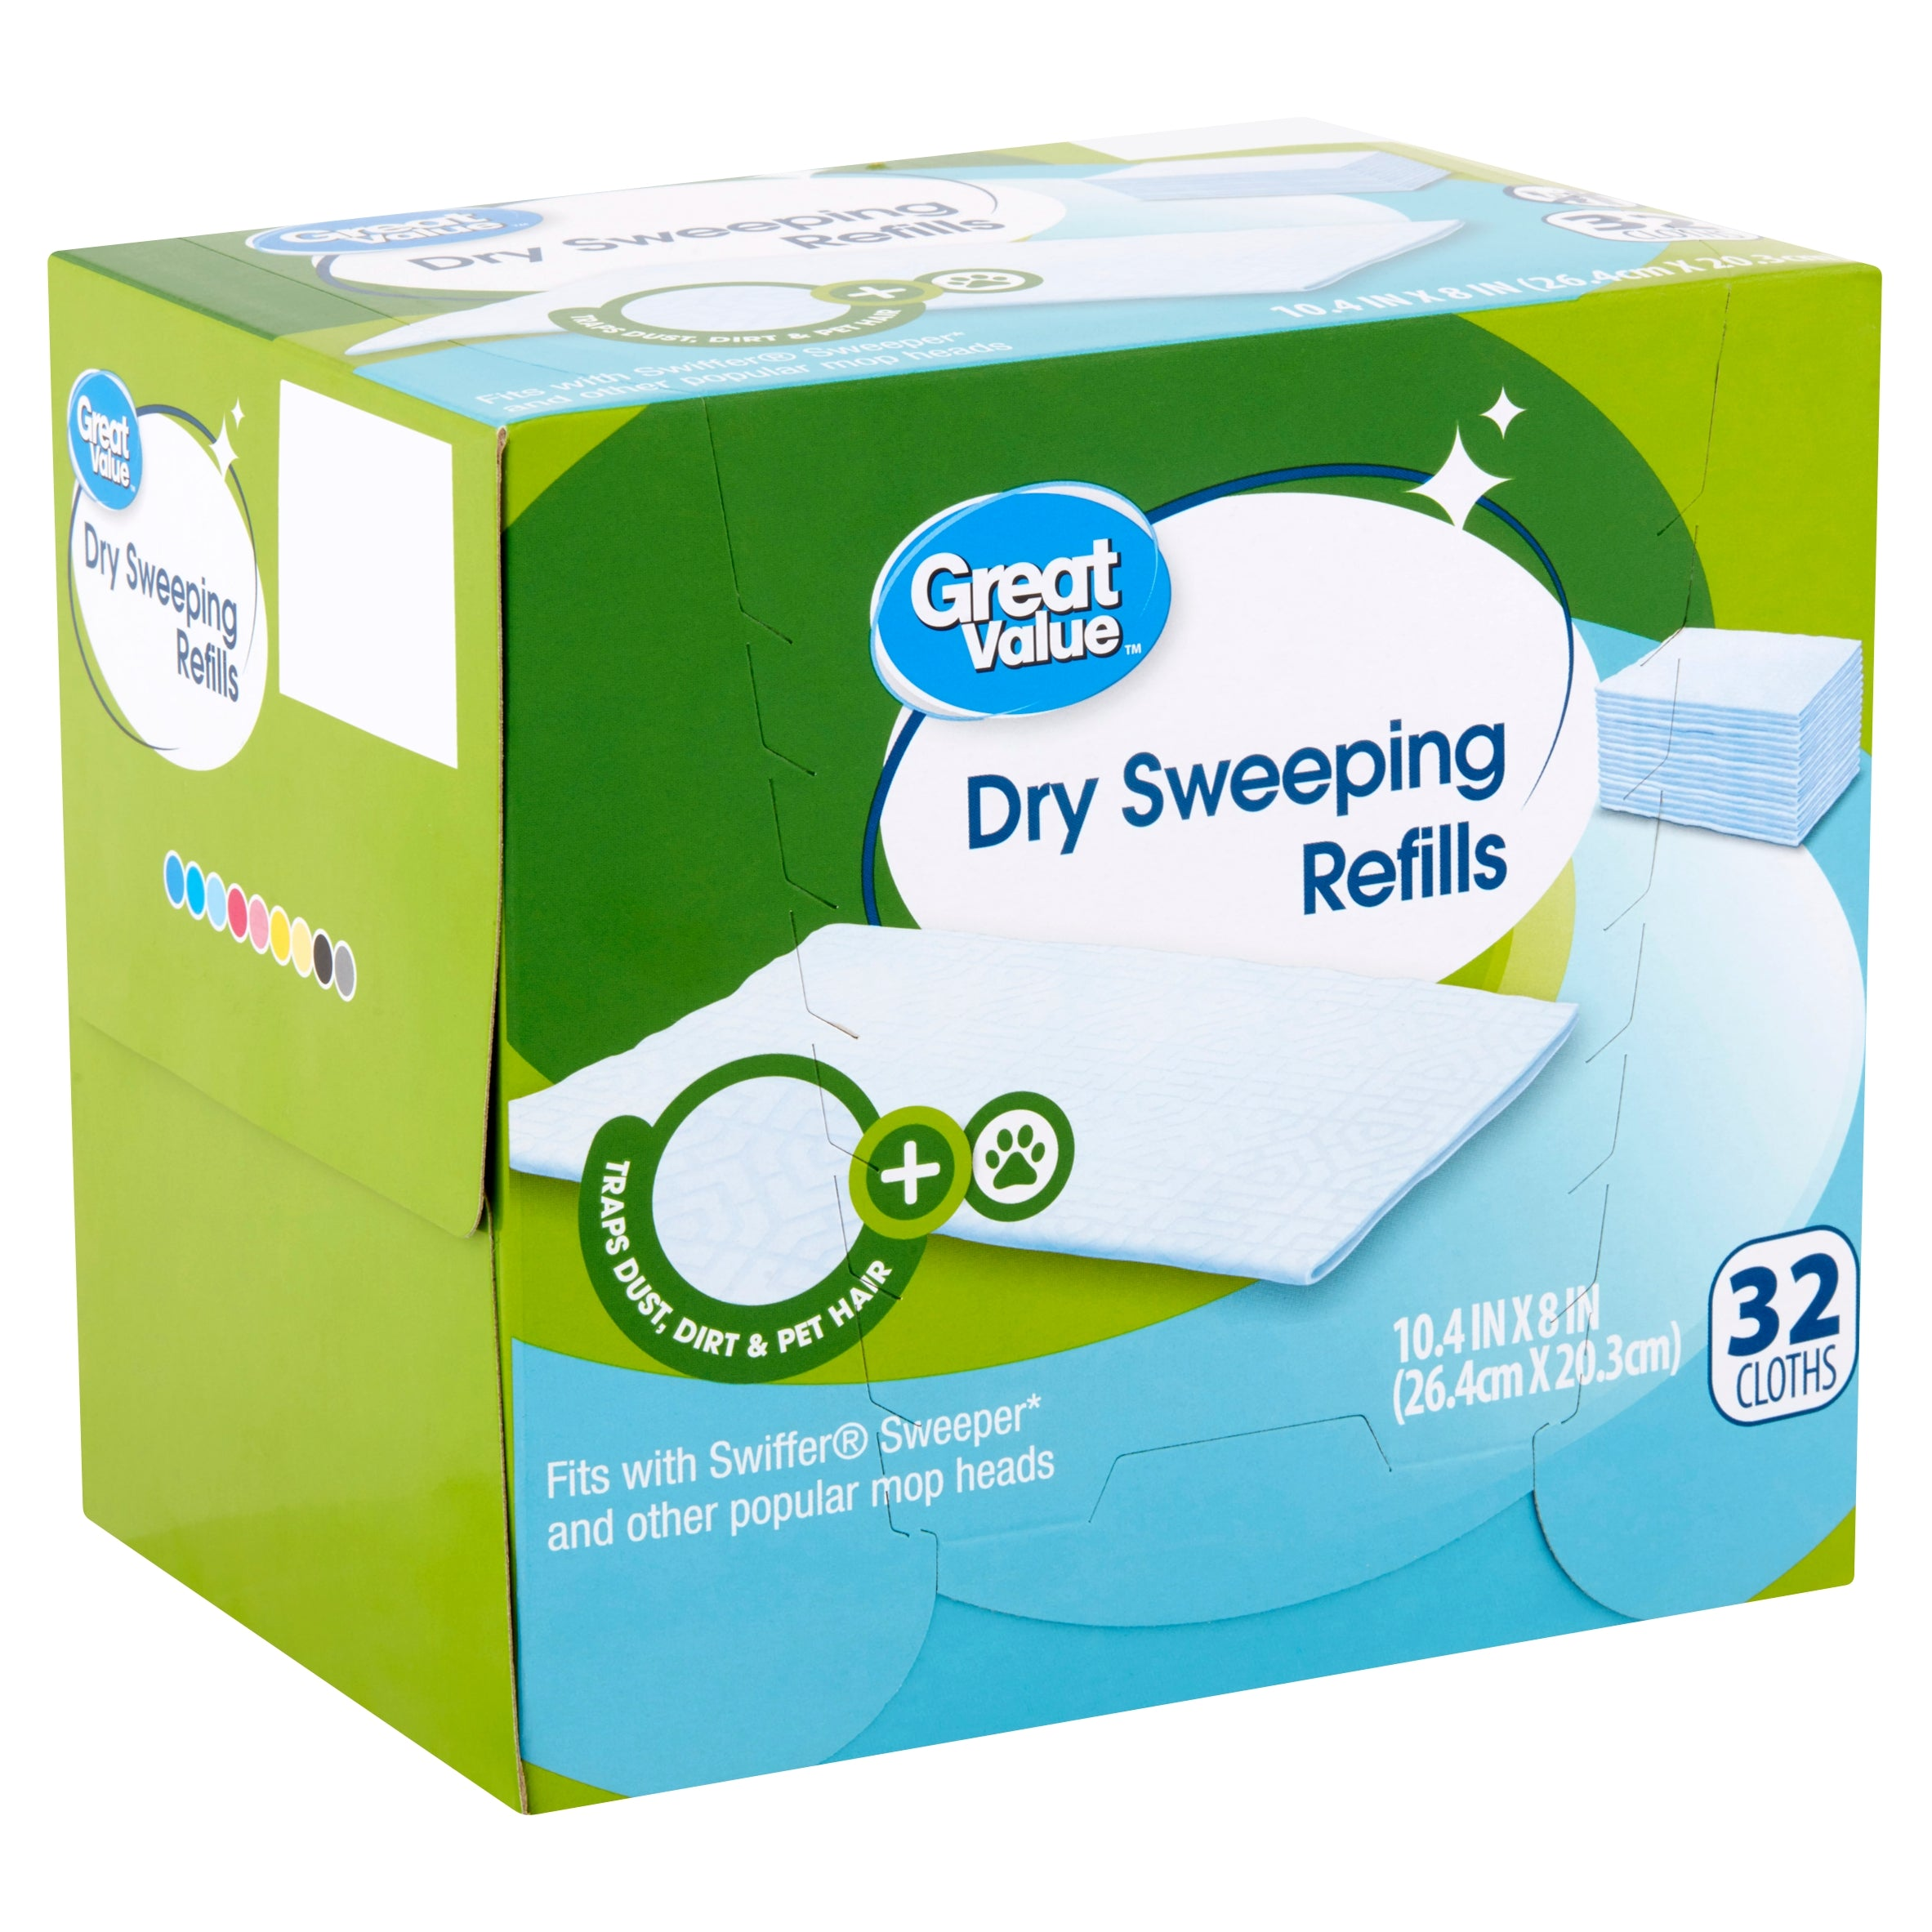 Great Value Dry Sweeping Cloth Refills, 32 Count - FLJ CORPORATIONS